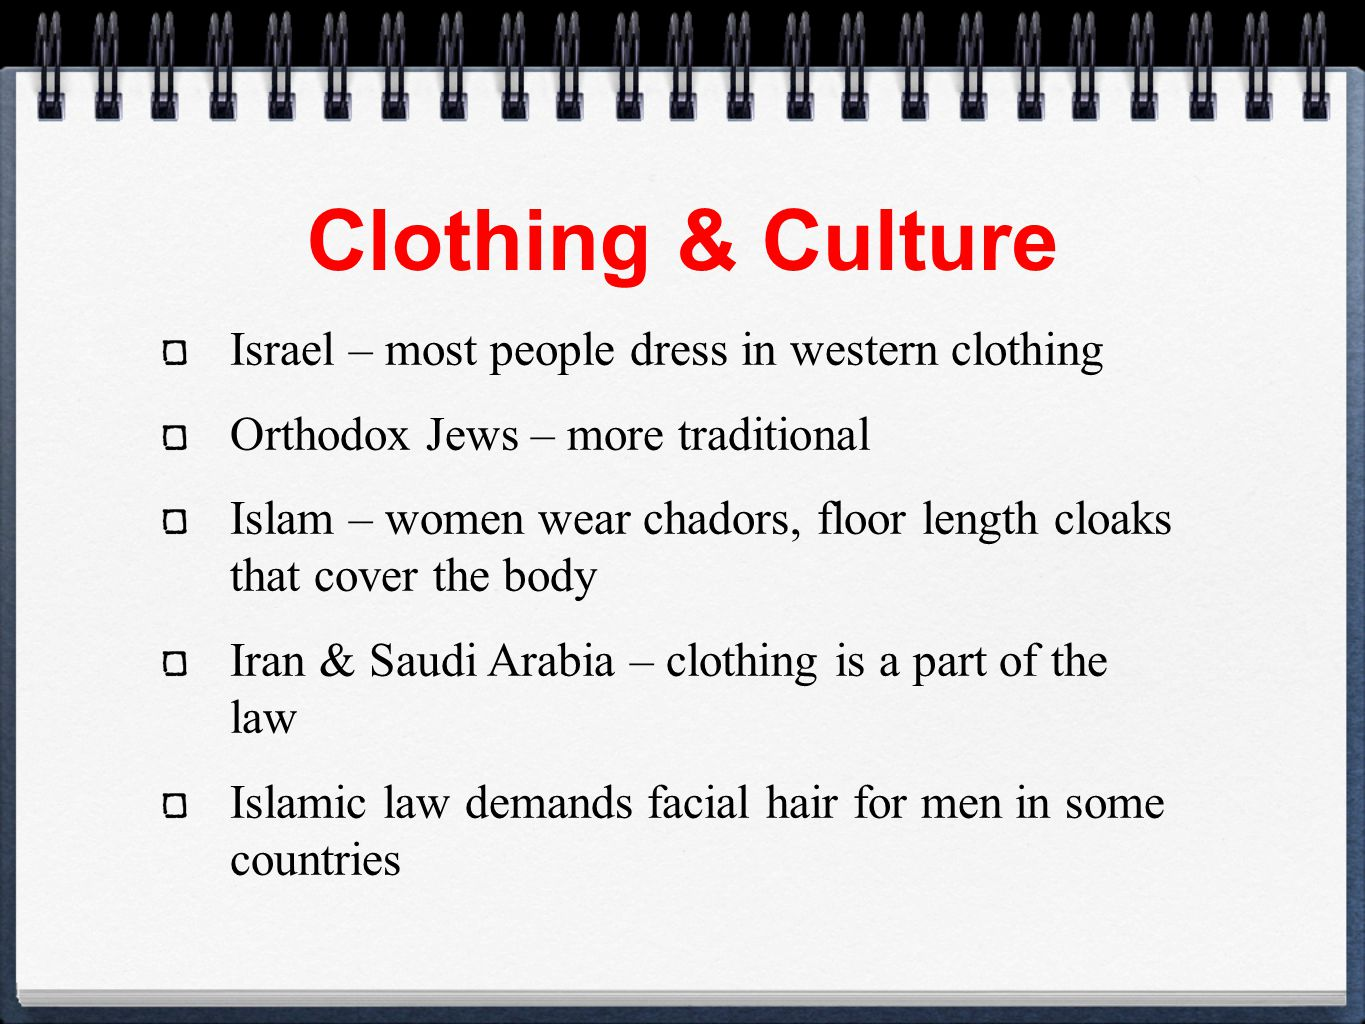 Clothing & Culture Israel – most people dress in western clothing Orthodox Jews – more traditional Islam – women wear chadors, floor length cloaks that cover the body Iran & Saudi Arabia – clothing is a part of the law Islamic law demands facial hair for men in some countries